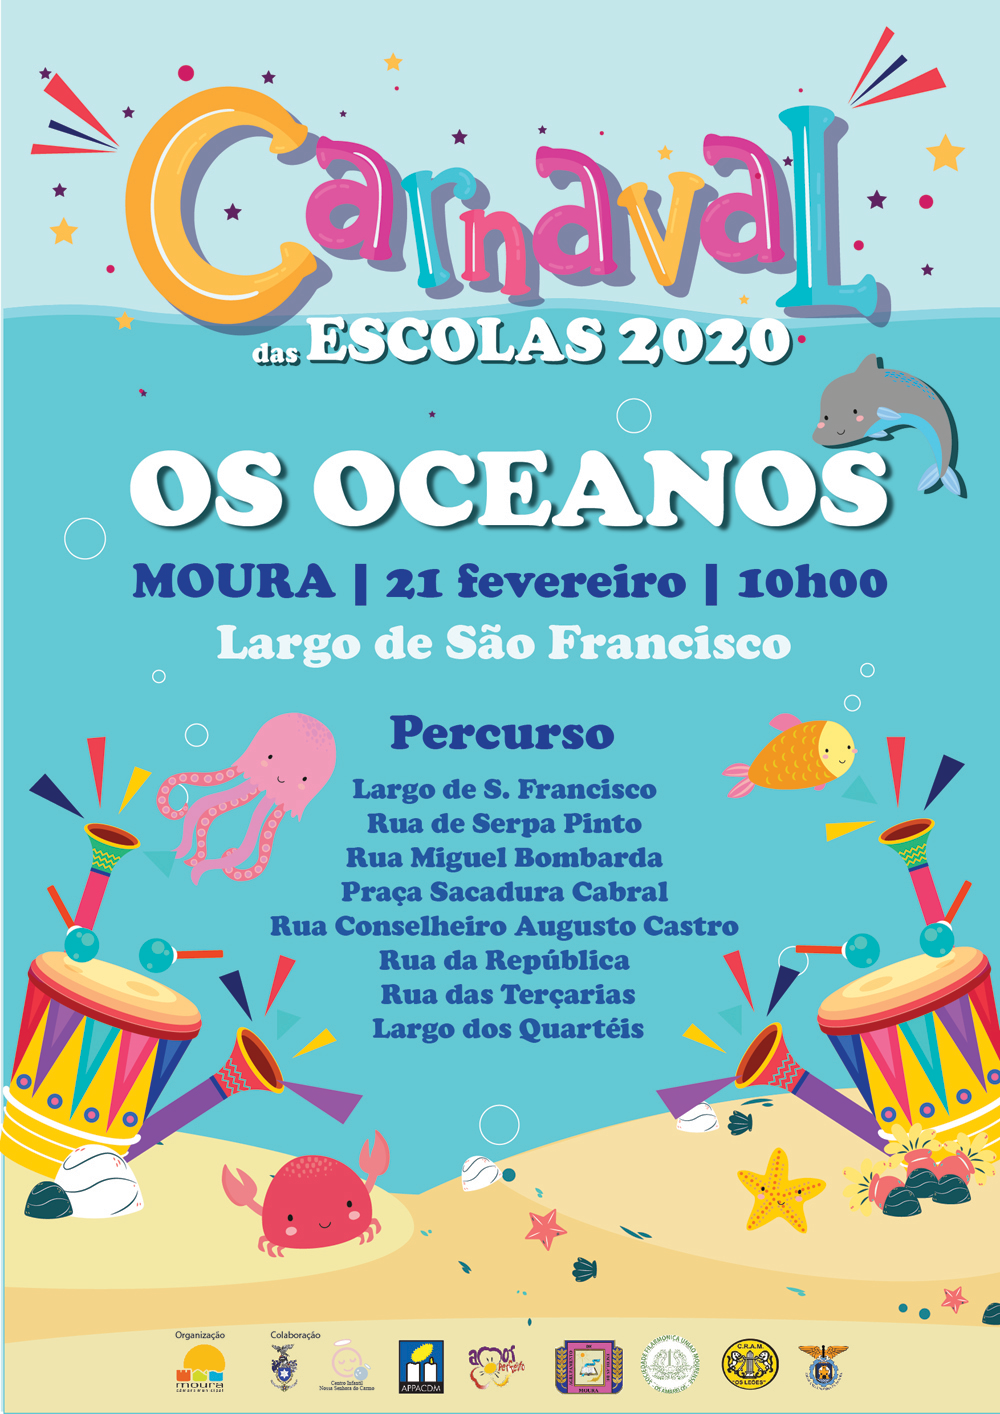 Carnaval 2020 in Moura